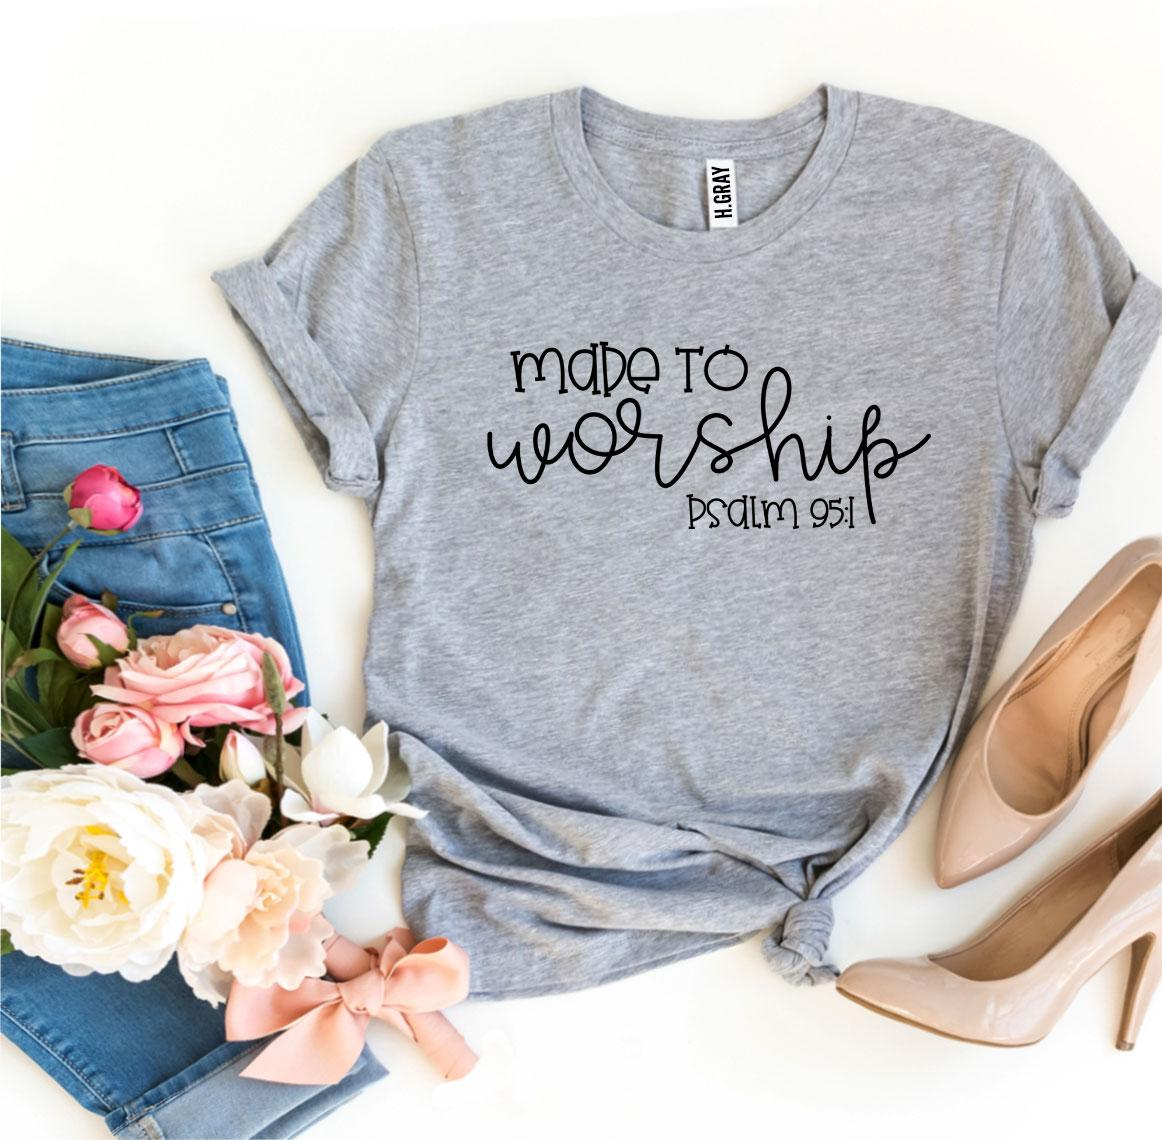 Made To Worship Psdlm 95:1 T-shirt